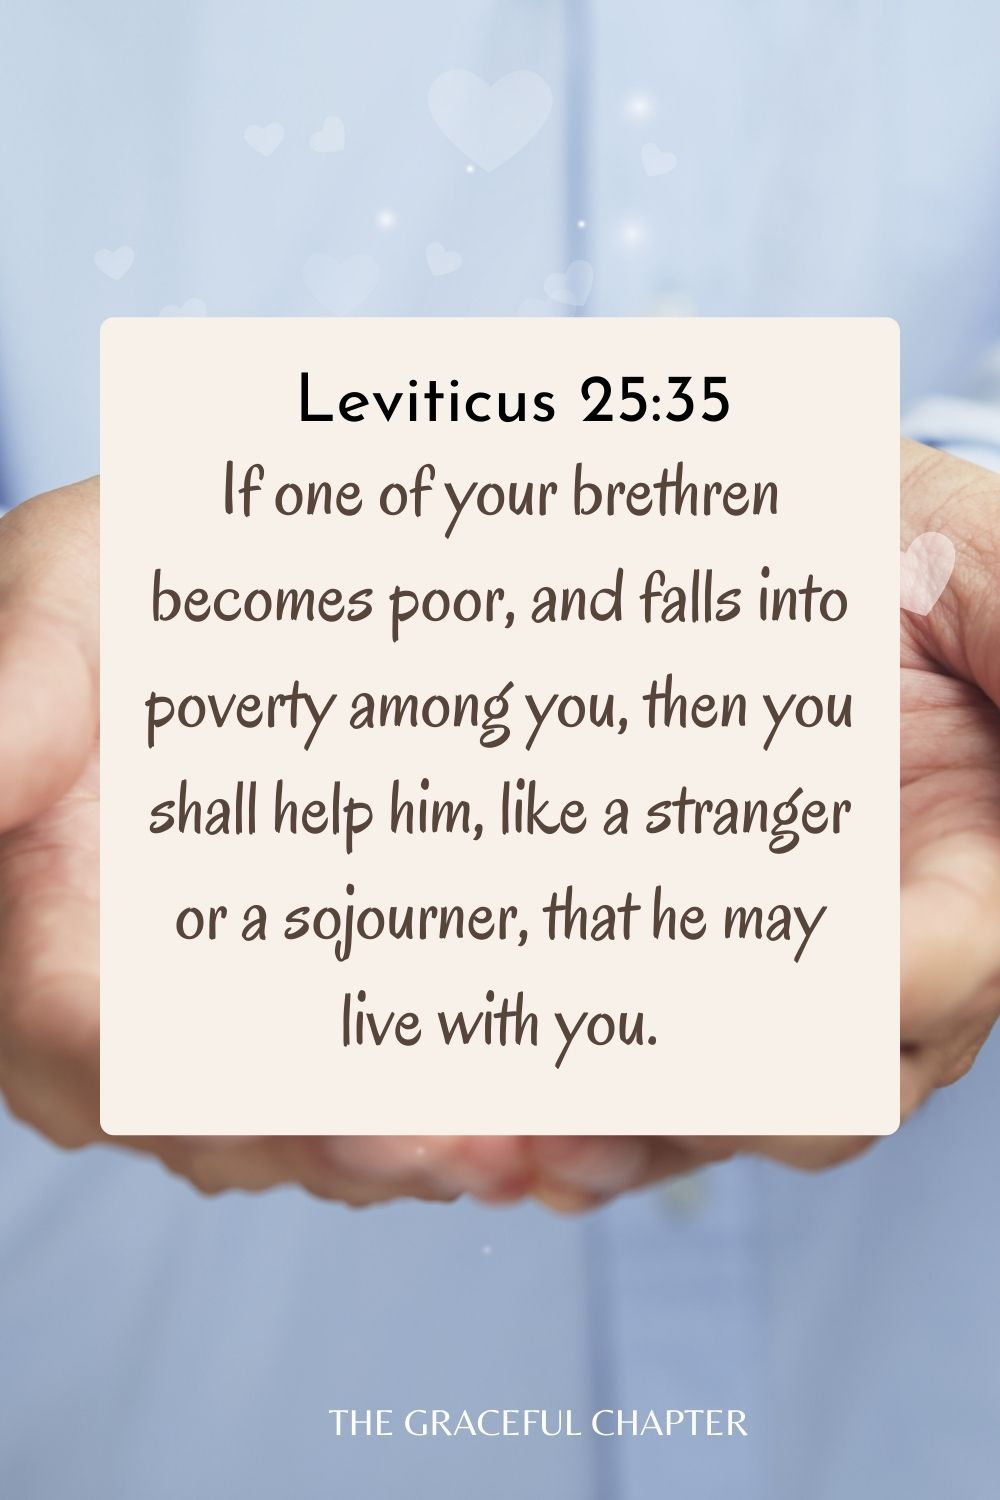 If one of your brethren becomes poor, and falls into poverty among you, then you shall help him, like a stranger or a sojourner, that he may live with you. Leviticus 25:35